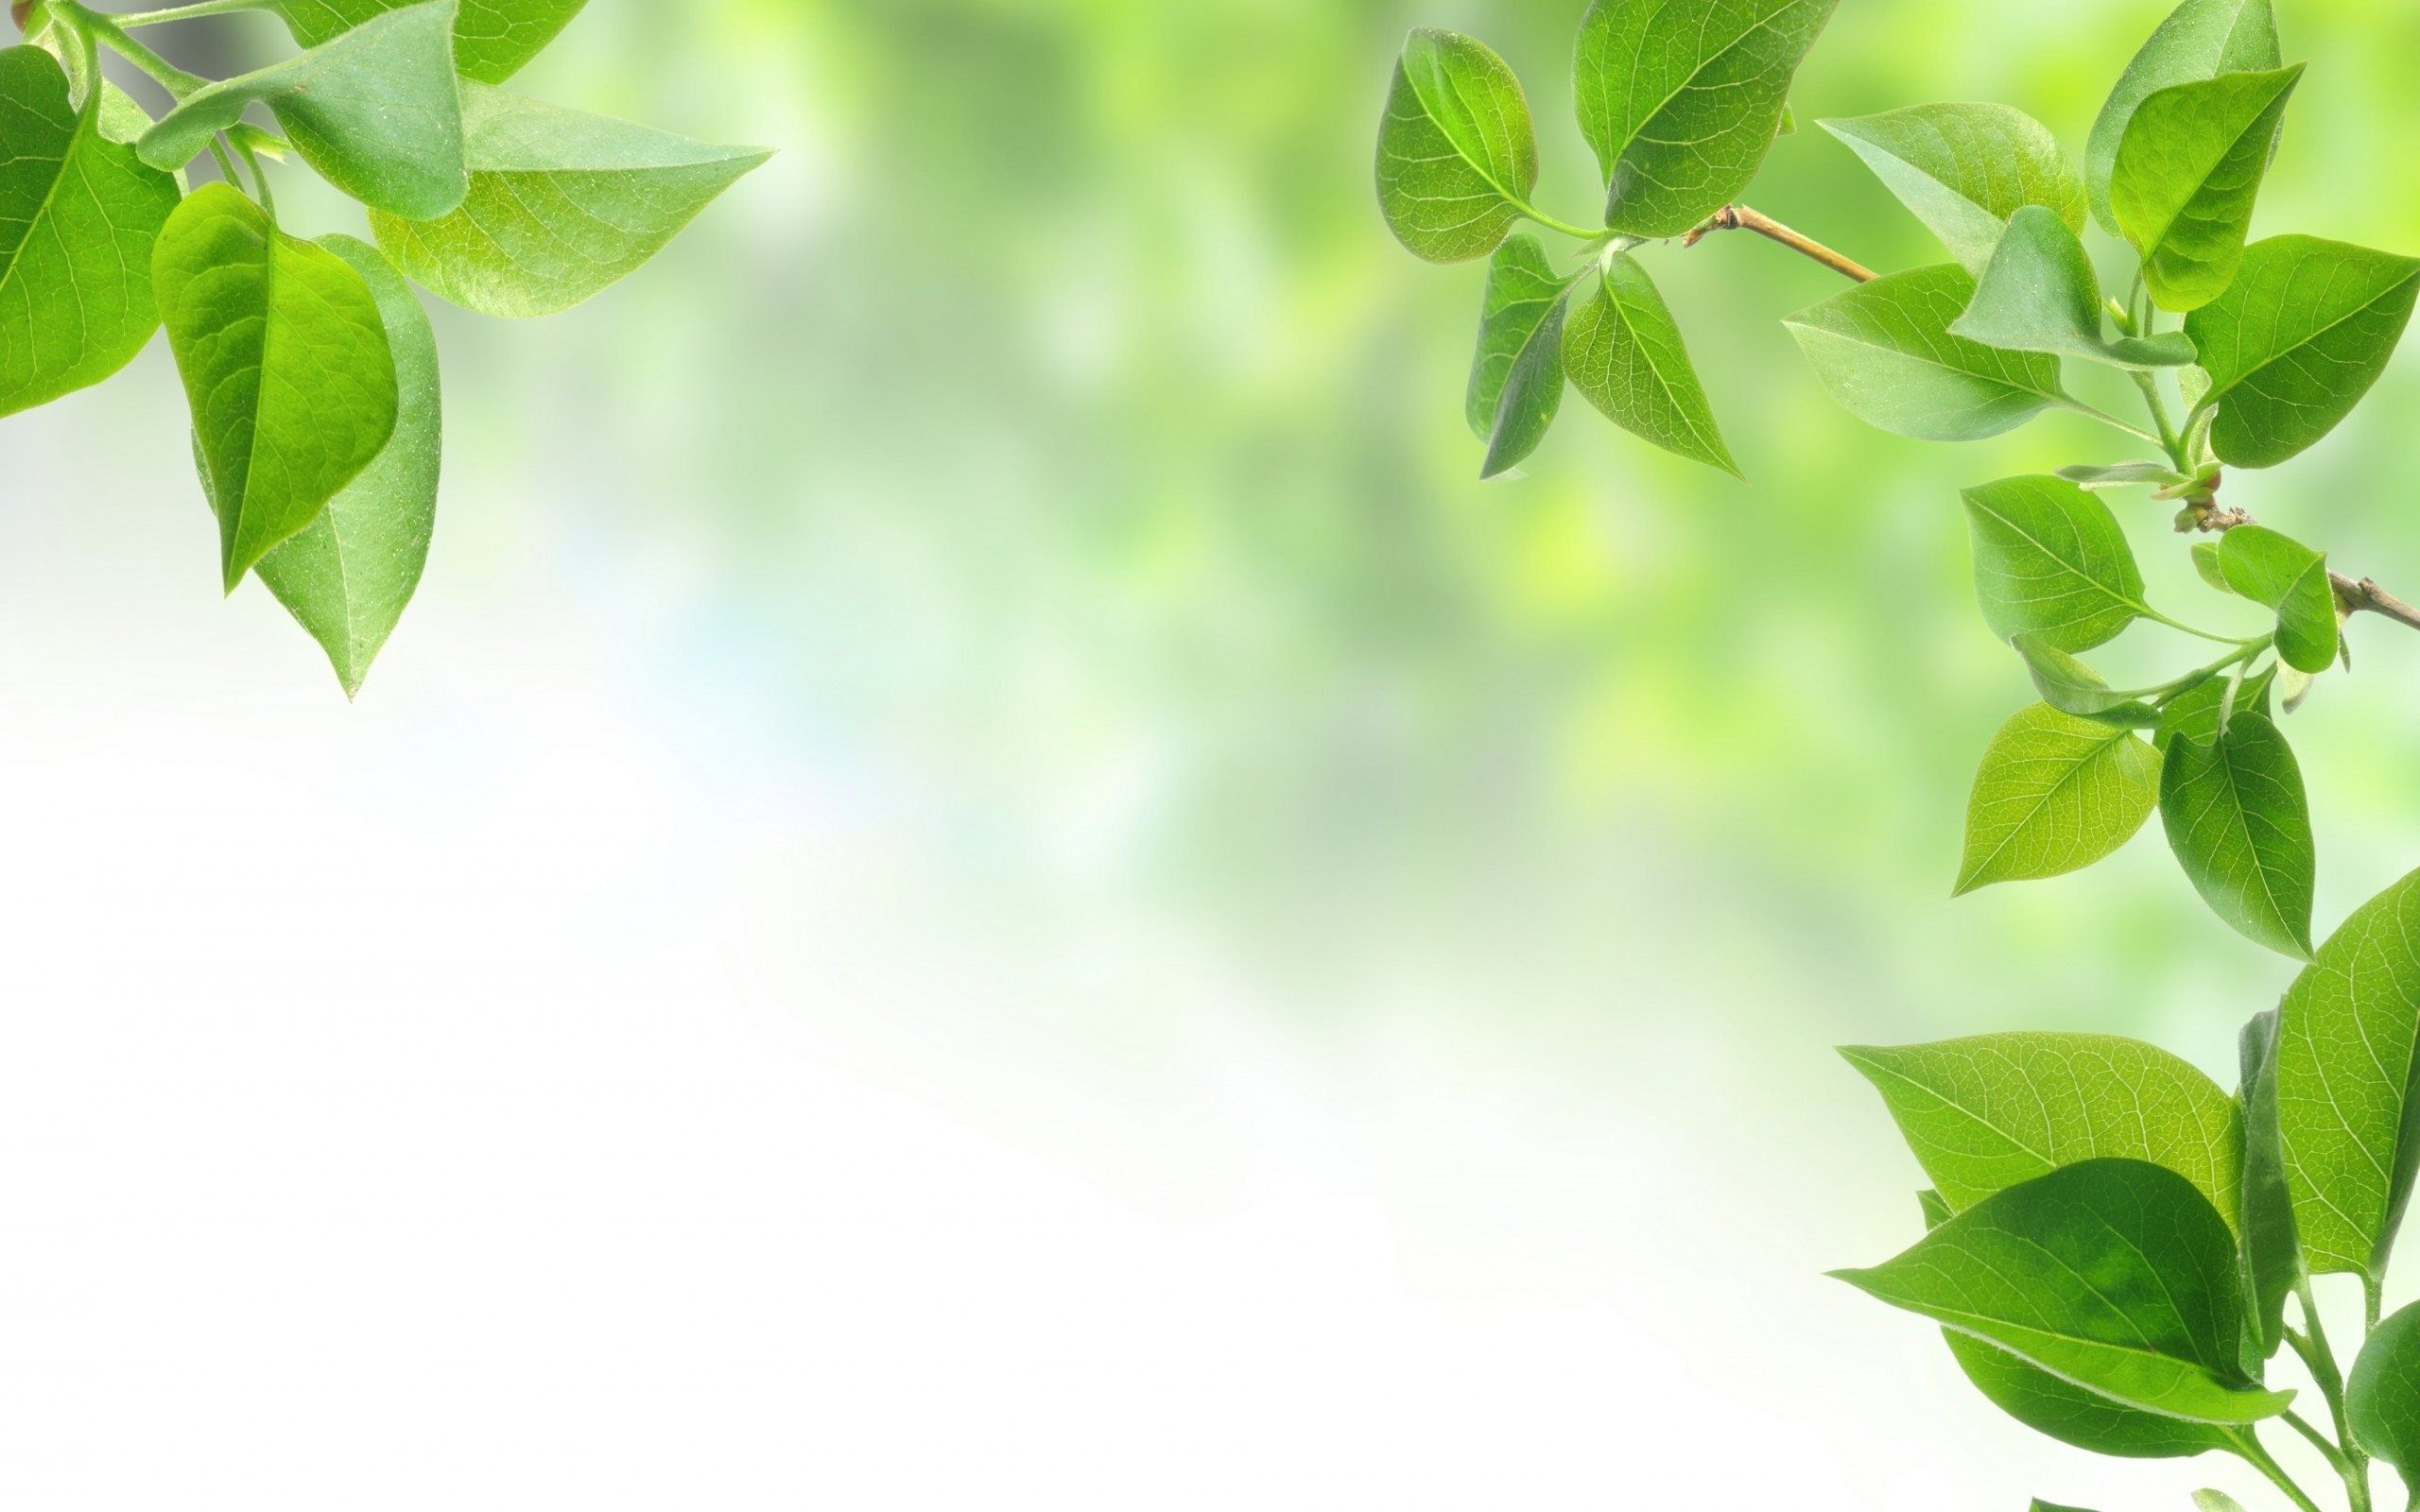 Green Leaves Wallpapers Top Free Green Leaves Backgrounds